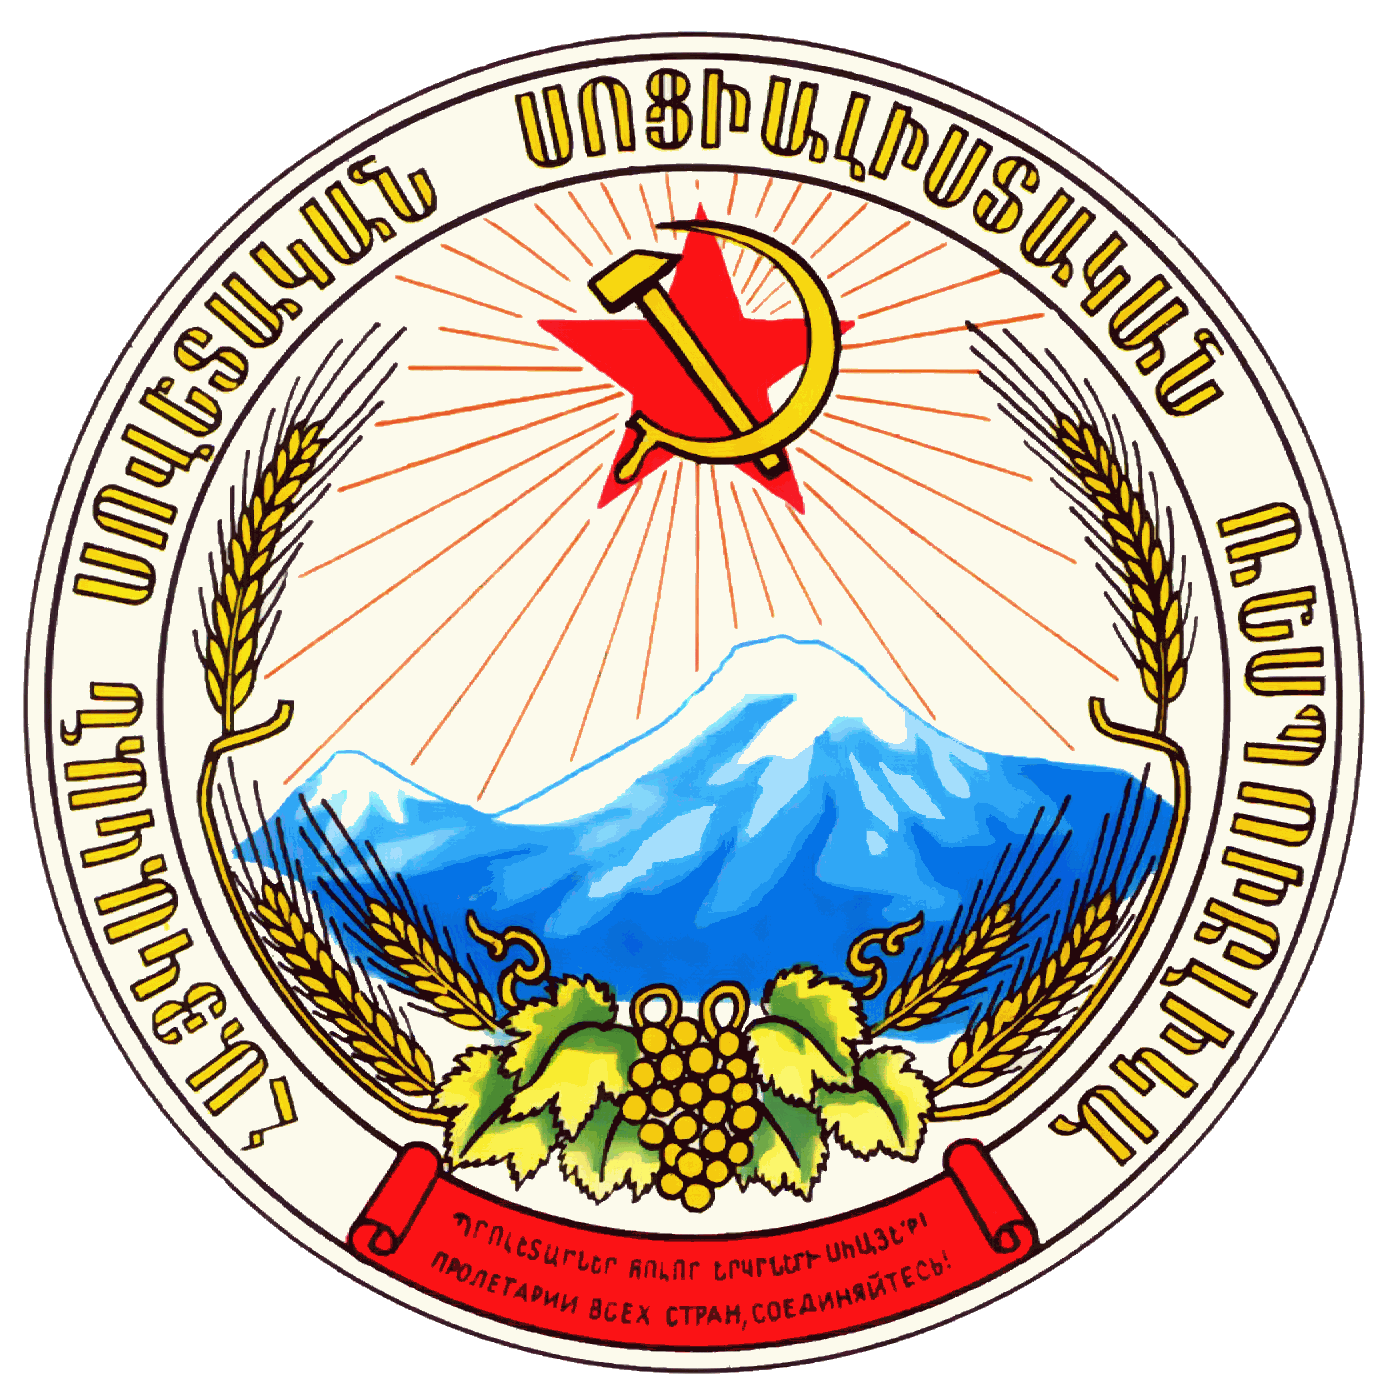 Armenia – Soviet Armenia - The coat of arms of Soviet Armenia depicting Mount Ararat in the center.